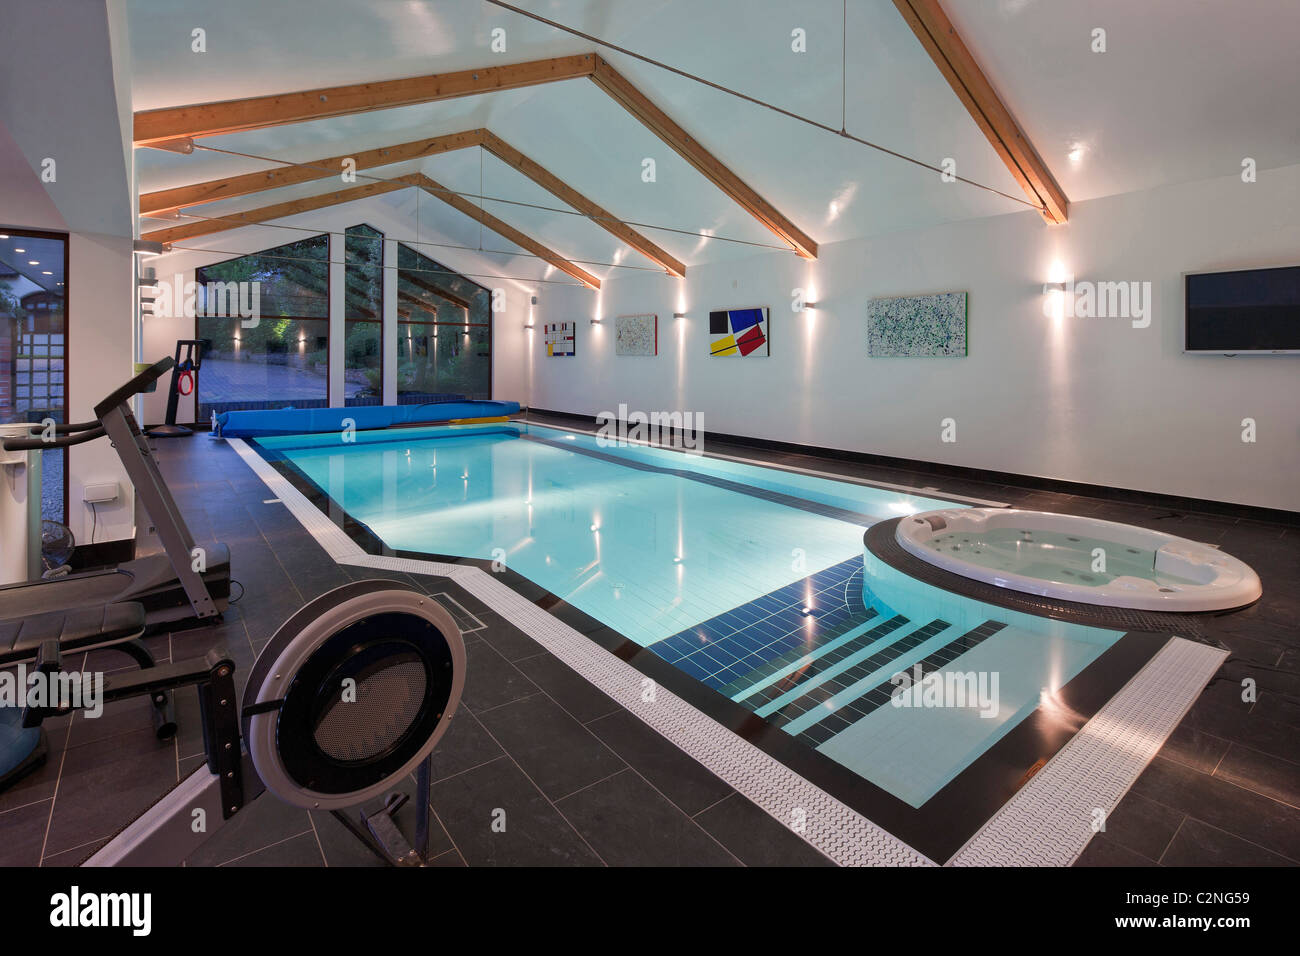 Pool house with swimming pool and gym - Stock Image